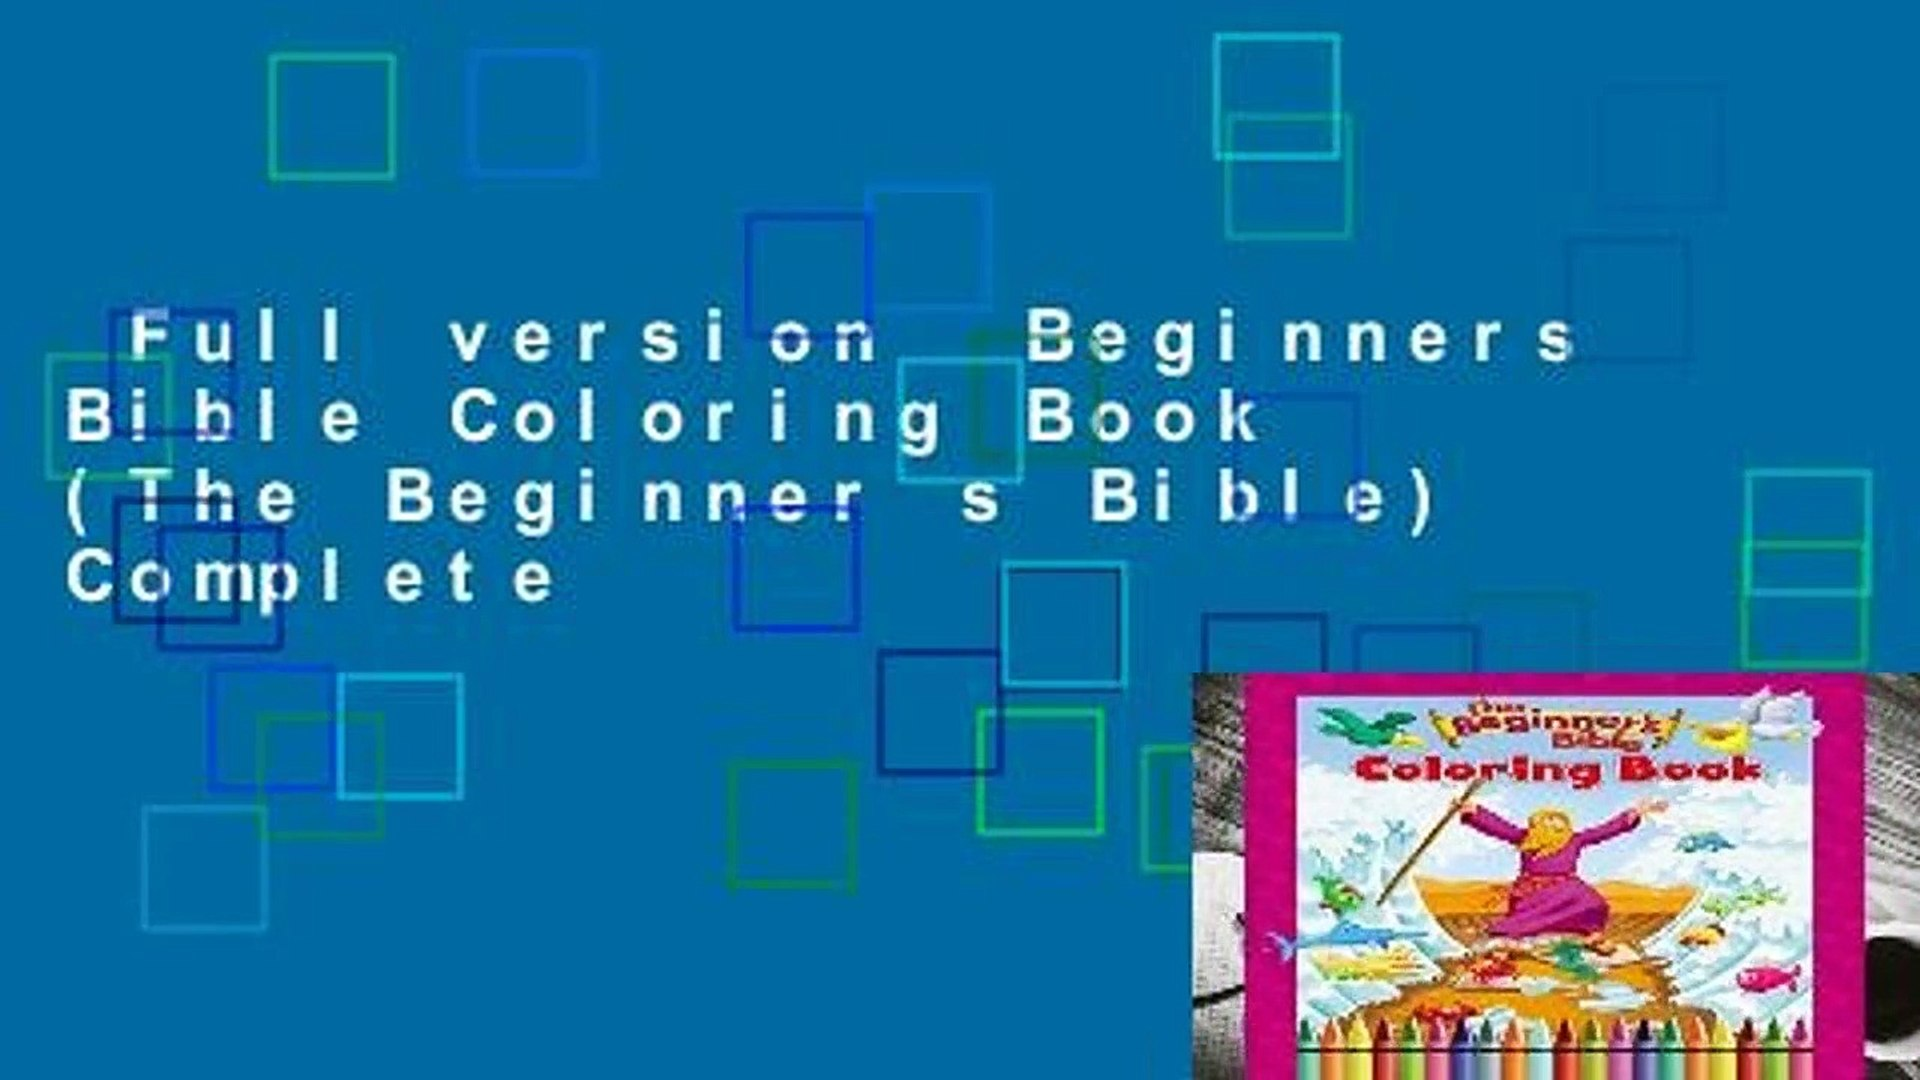 760+ Beginners Bible Coloring Book Free